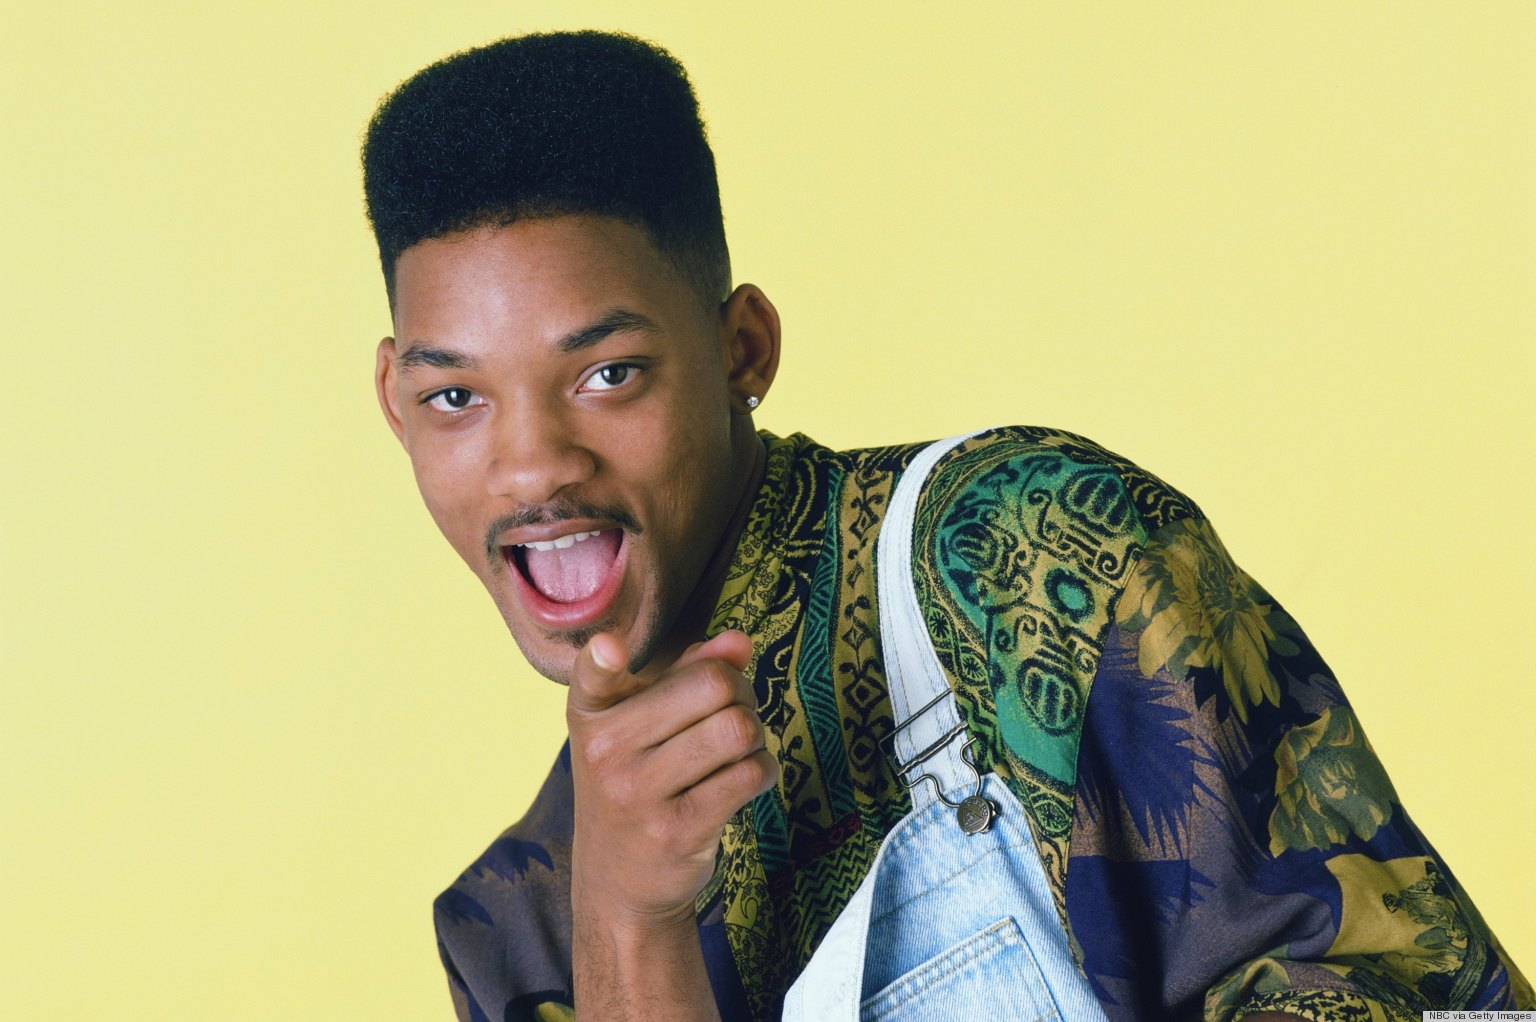 Will Smith with the high-top fade cut. It was on the list of popular but one of the worst hairstyles in the 80s